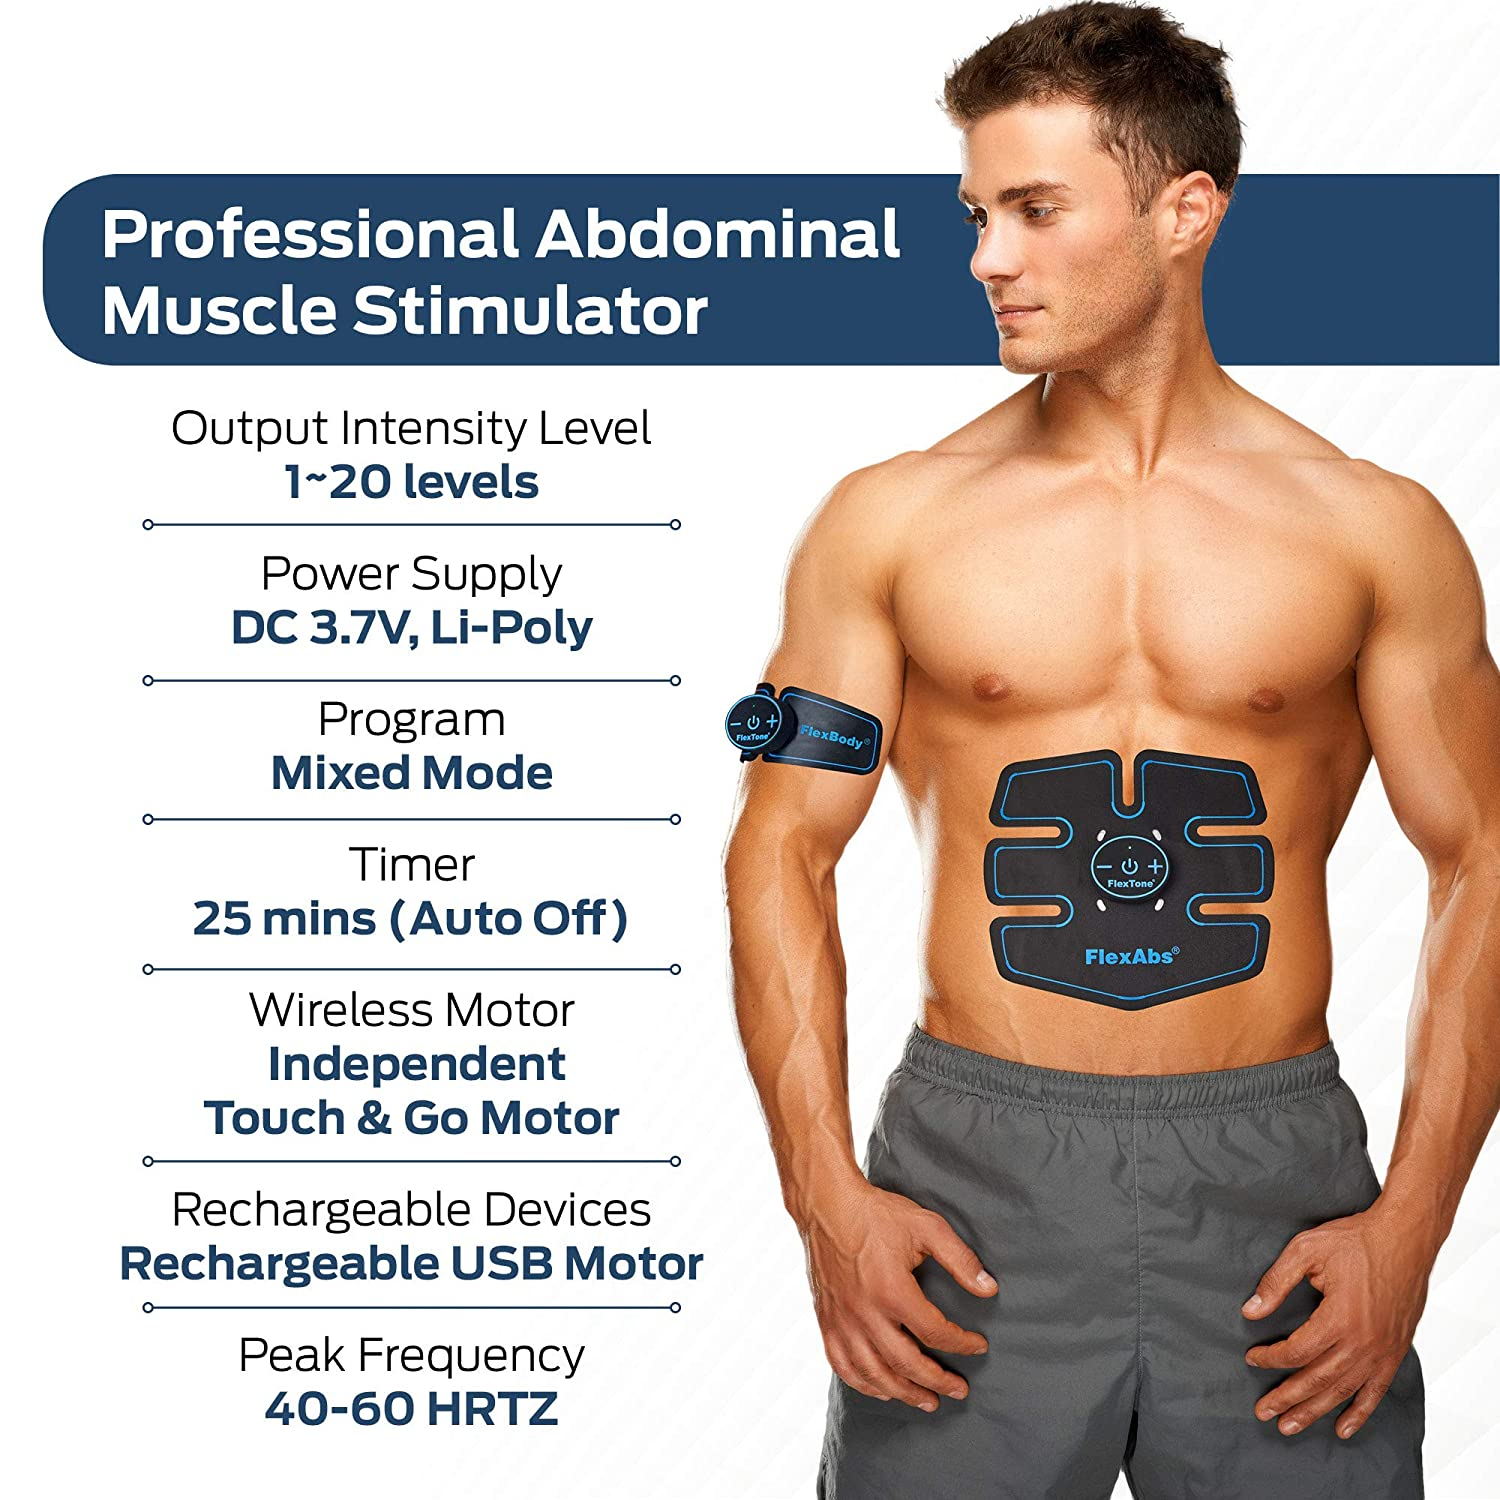 Flextone Abs Stimulator Muscle Toner - FDA 510K Cleared - Rechargeable  Wireless EMS Massager for Weight Loss - The Ultimate Electronic Power Ab